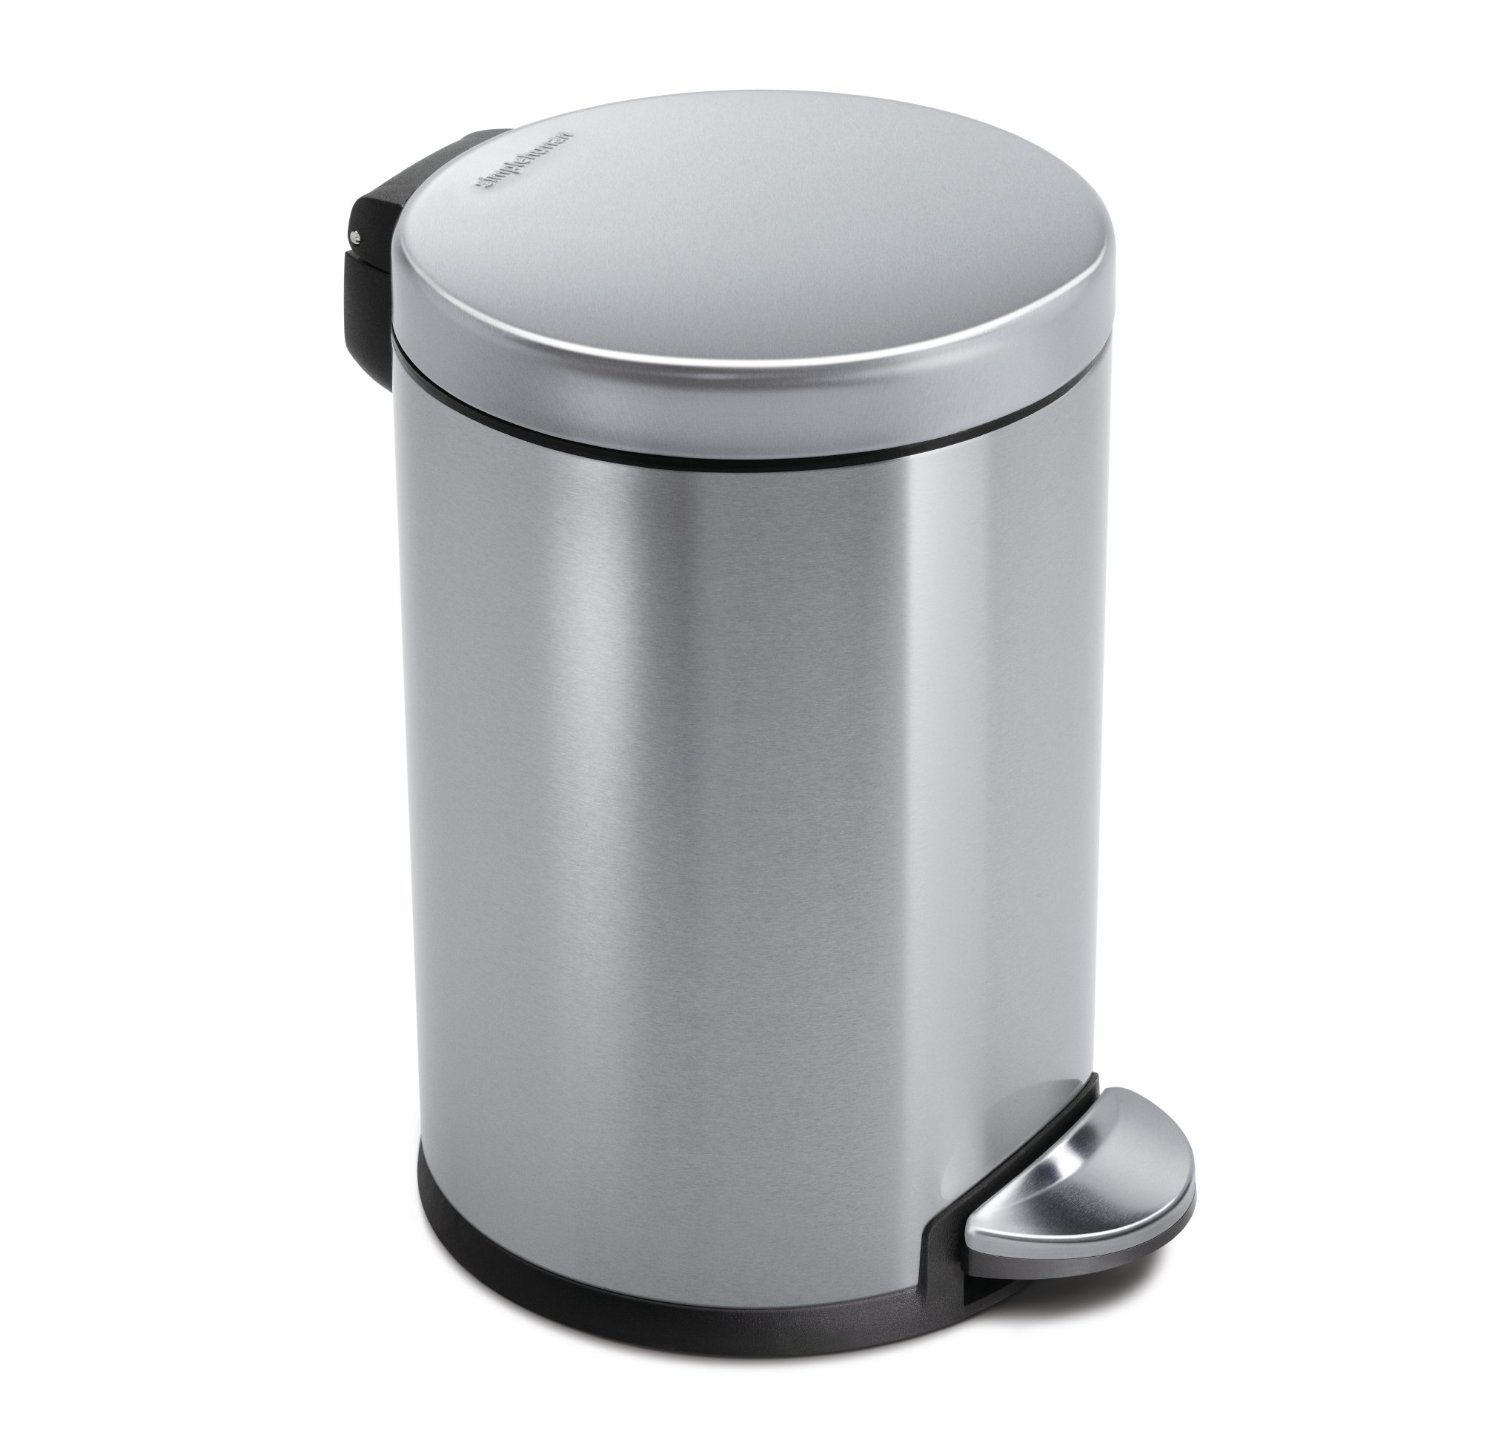 Simplehuman 4.5 L / 1.2 Gal Mini Round Step Trash Can U2013 Stainless Steel,  Available · Best Kitchen Sink